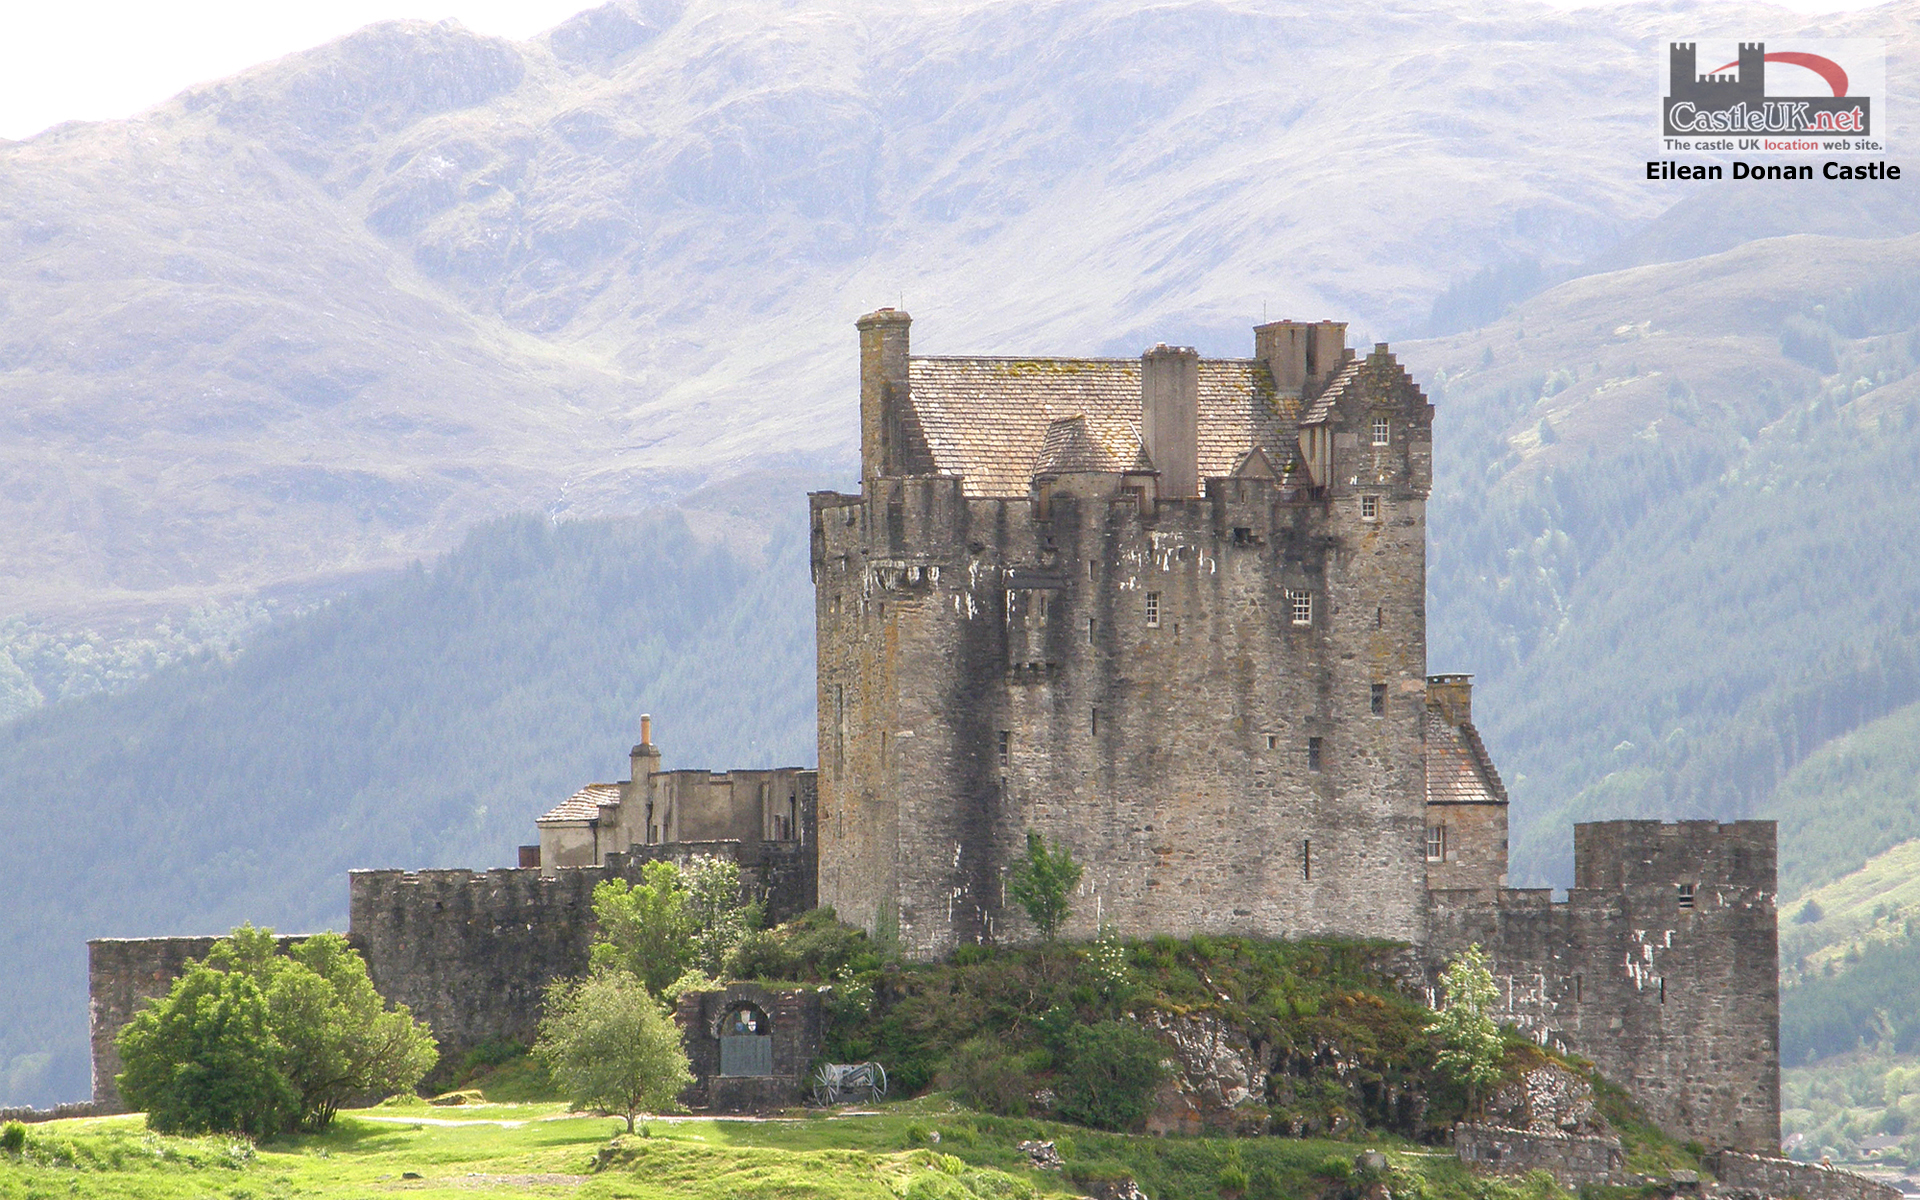 Download free eilean donan castle computer desktop pc wallpaper download free eilean donan castle computer desktop pc wallpaper scottish picture image of scotland for november 2011 from castle uk the castles location voltagebd Choice Image